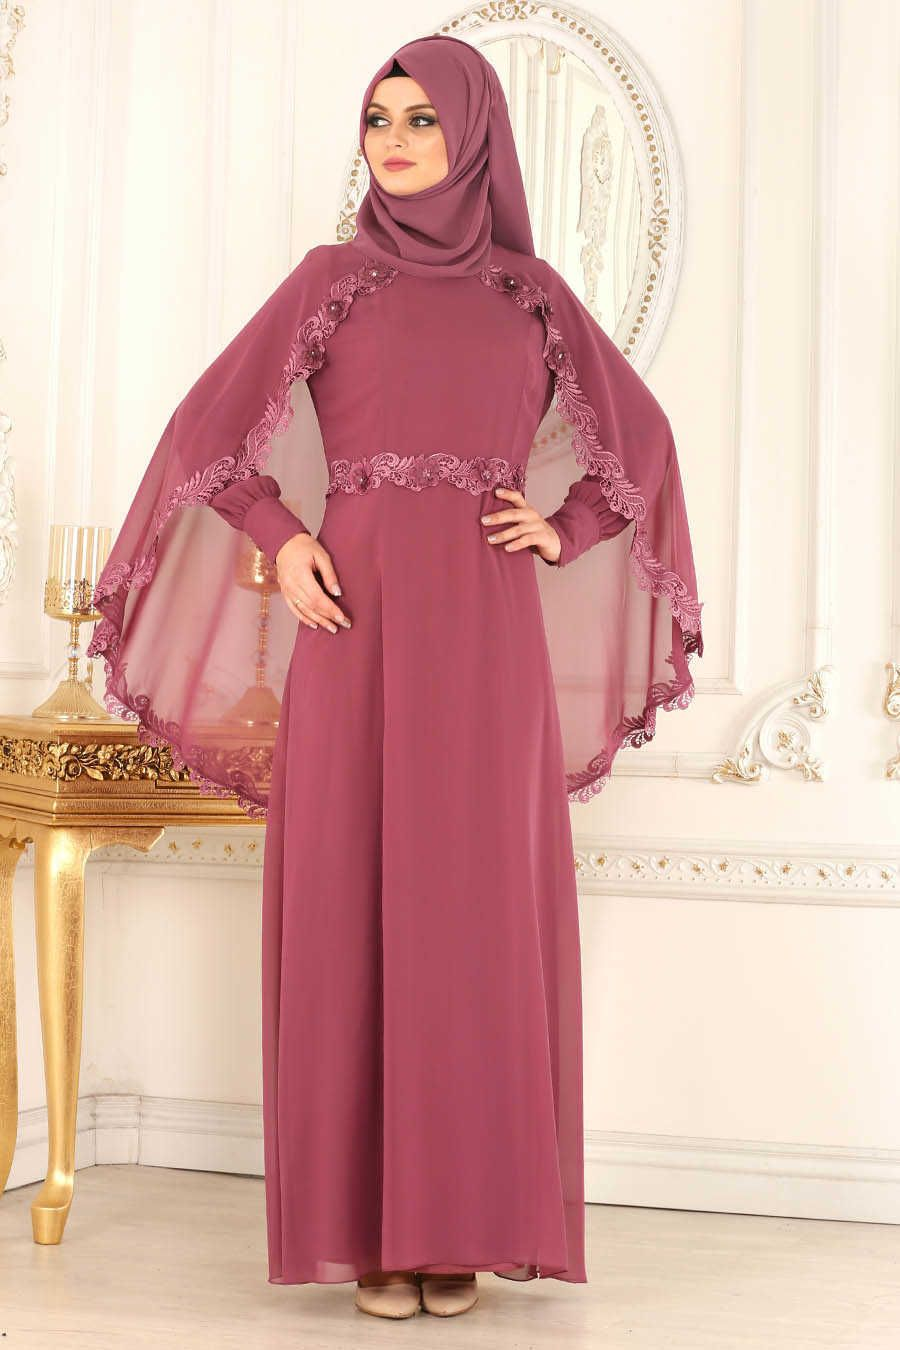 Neva style dusty rose hijab evening dress gk fashion muslim